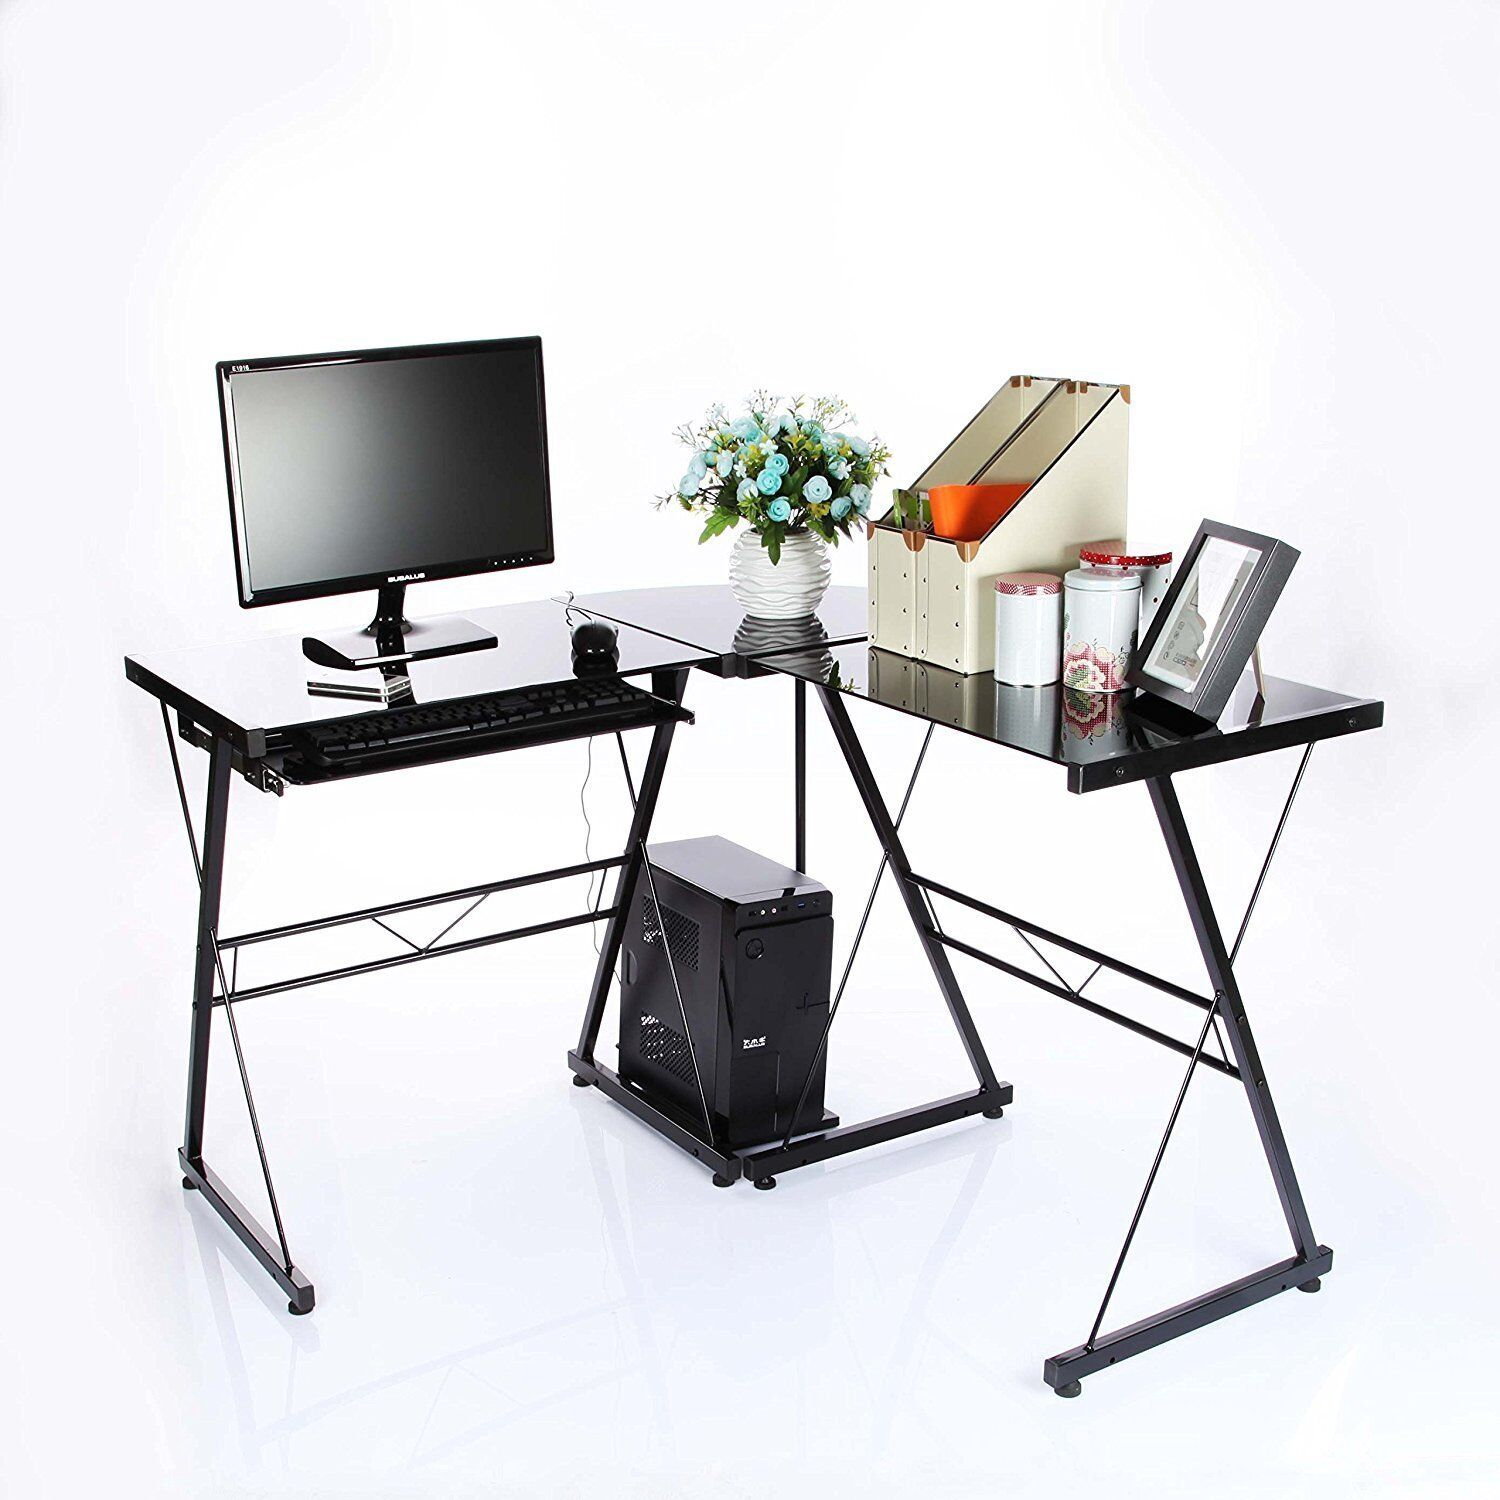 L-Shaped Corner Desk Glass/Metal • Stunning Black • Computer Desk Office Small